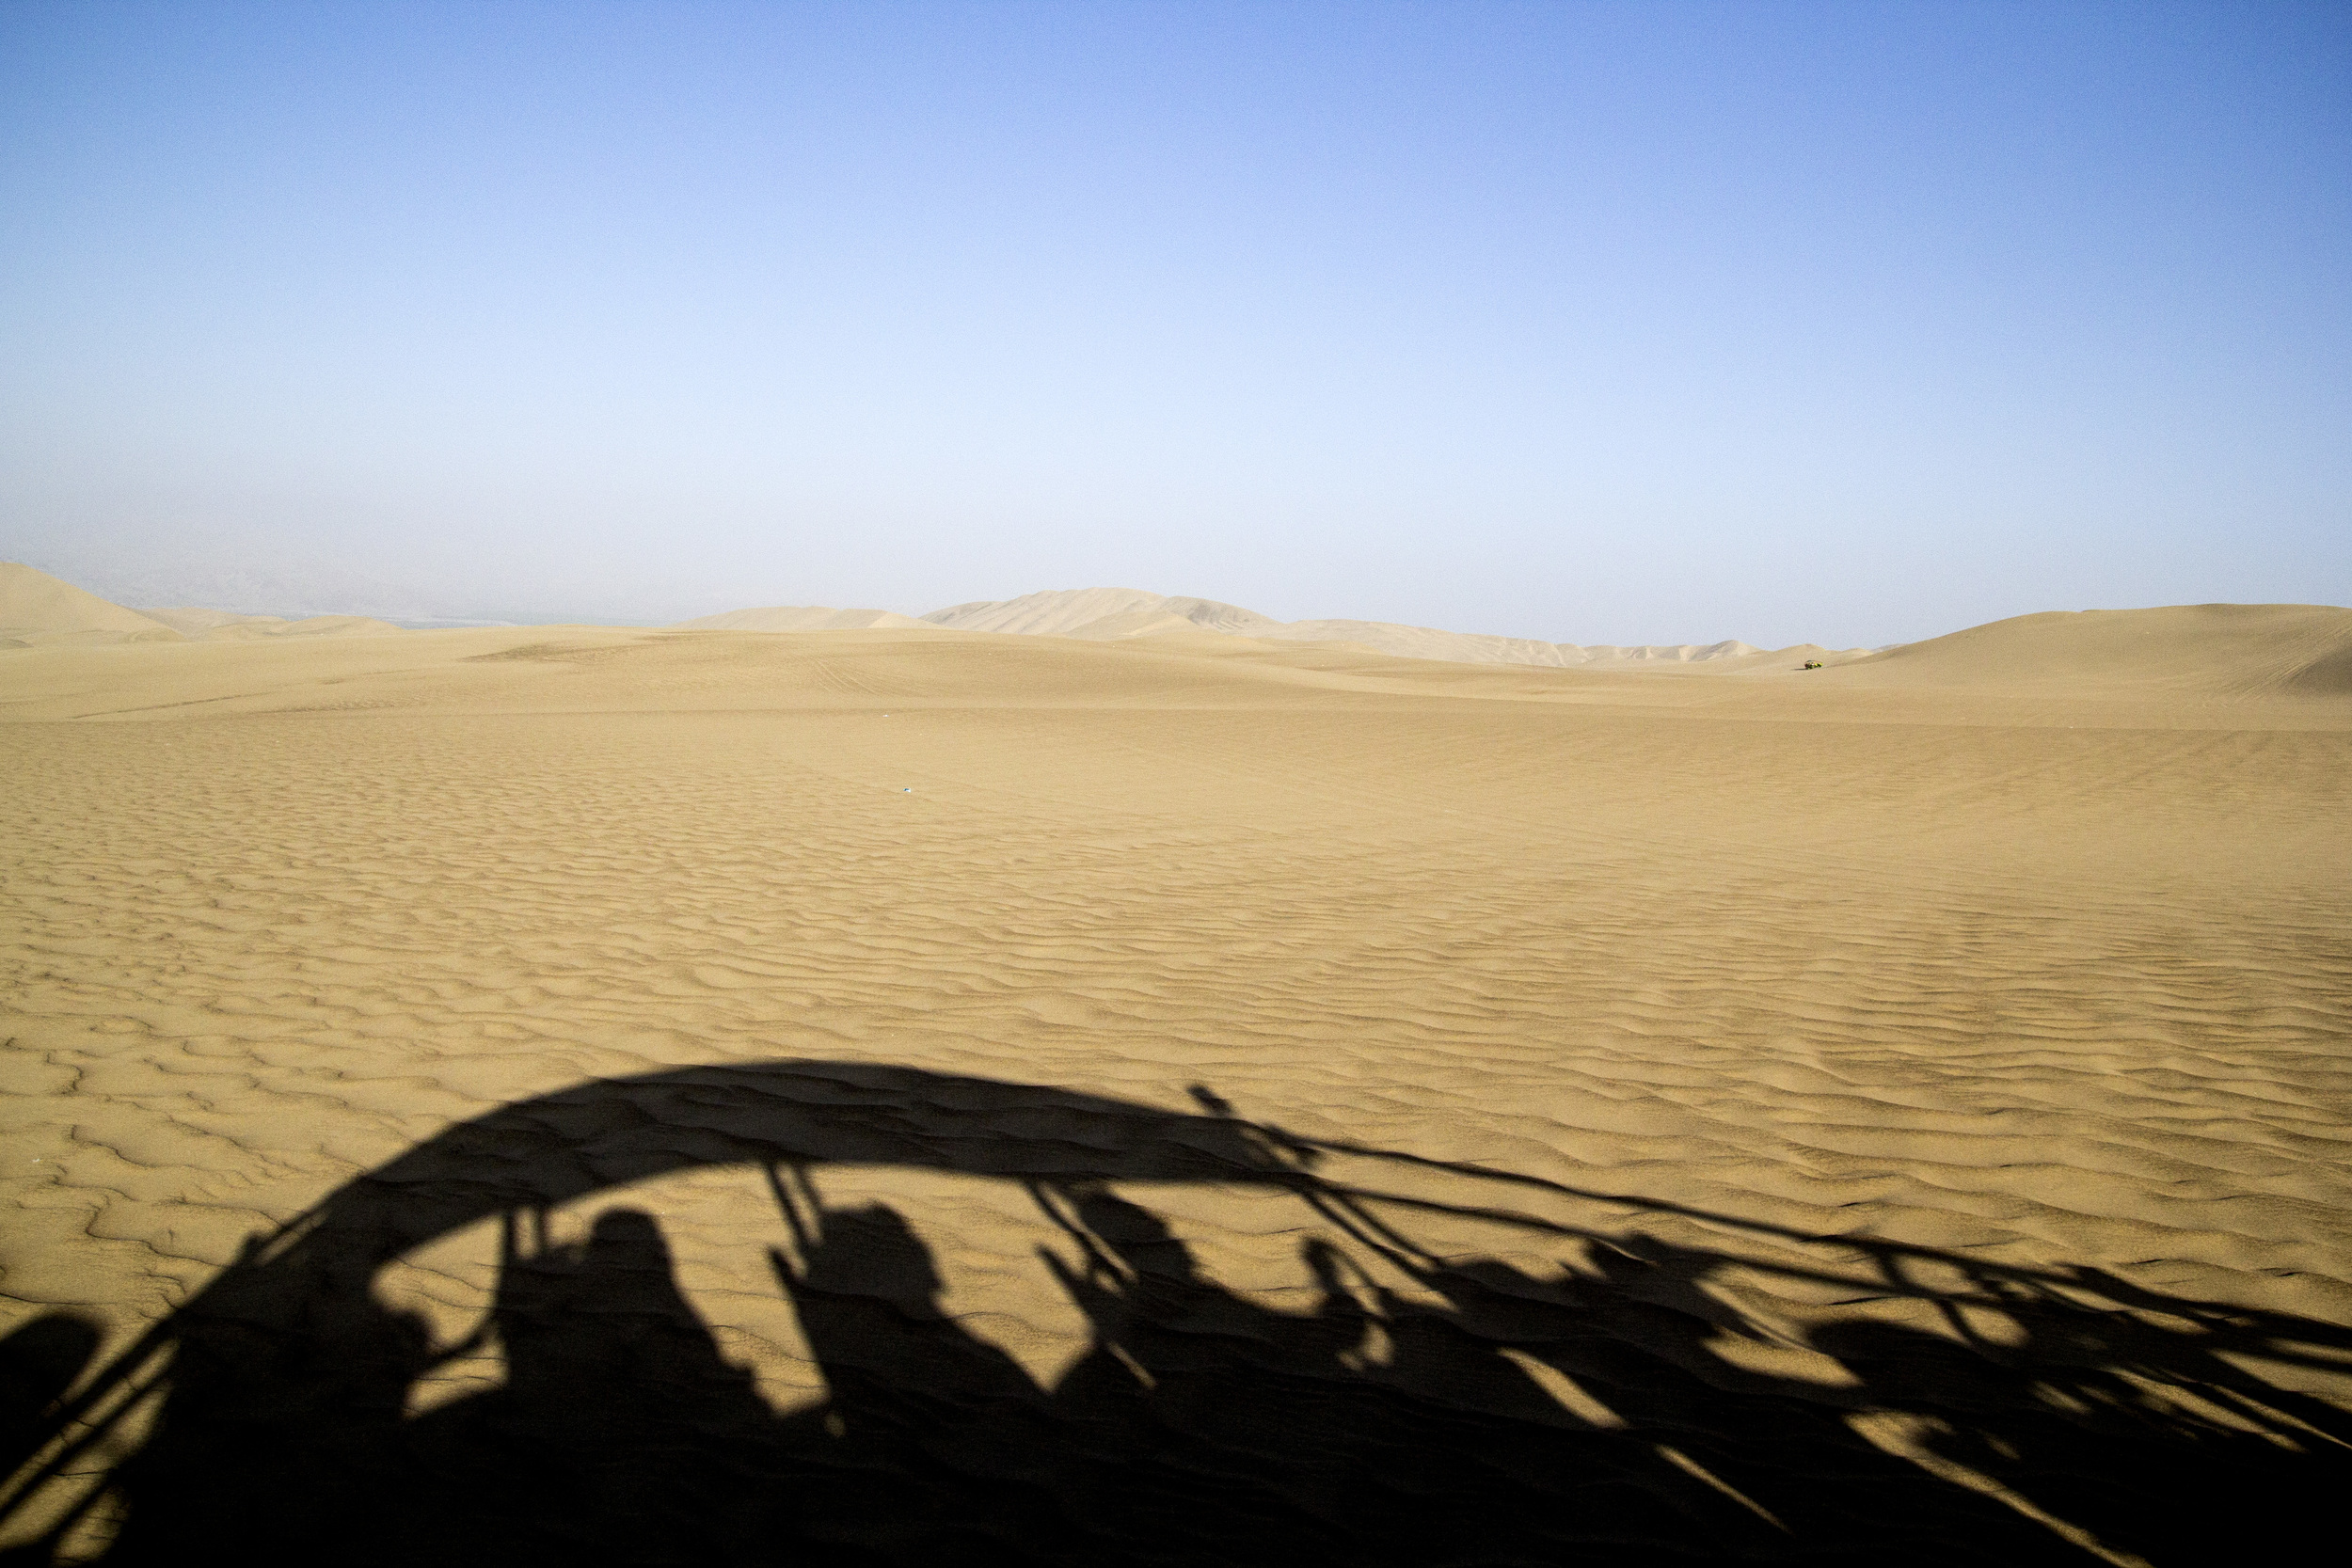 The sand dunes of Ica, Peru. I came here on a weekend trip with friends.